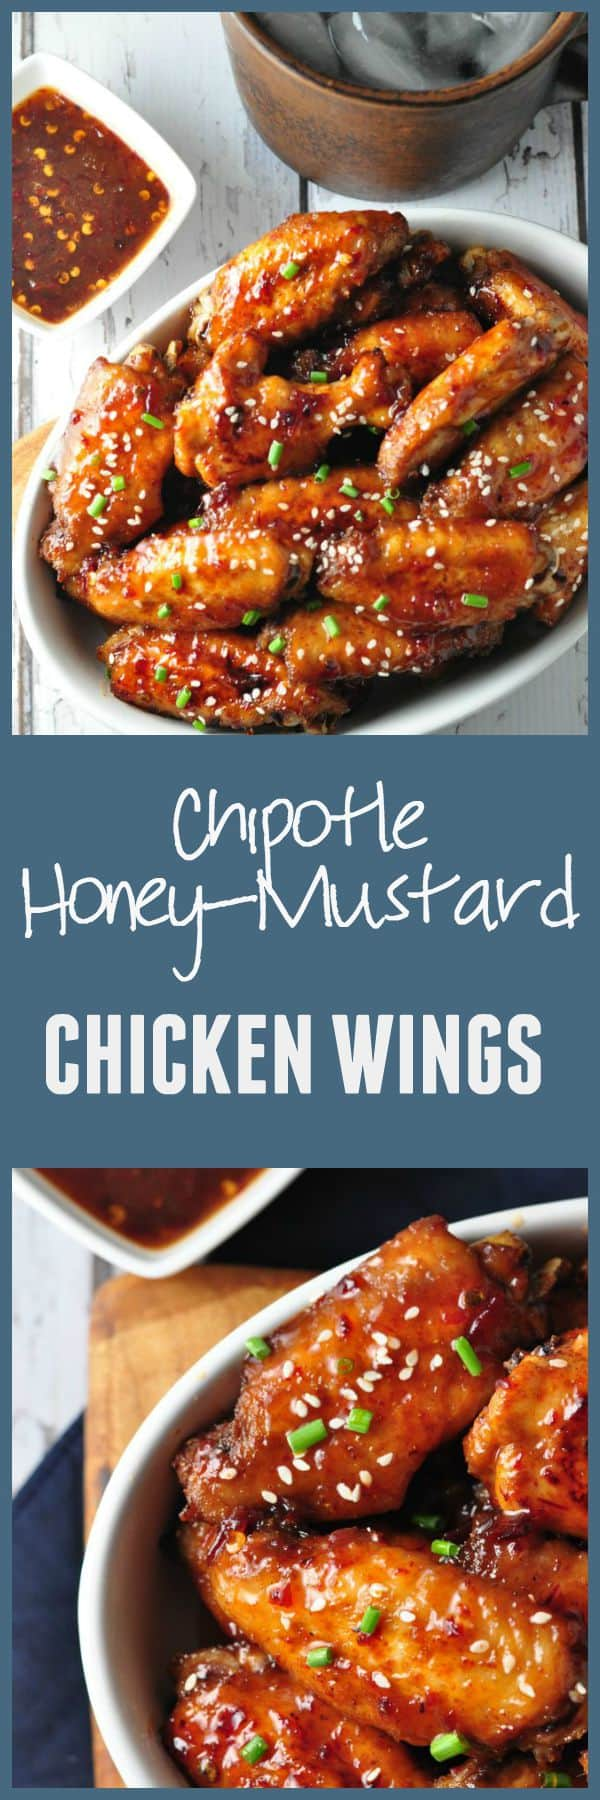 Chipotle Honey Mustard Glazed Chicken Wings from Flavour and Savour. Sweet, spicy and smoky, these Chipotle Honey-Mustard Glazed Chicken Wings are always popular and they disappear quickly!#chipotle #wings #honey_mustard